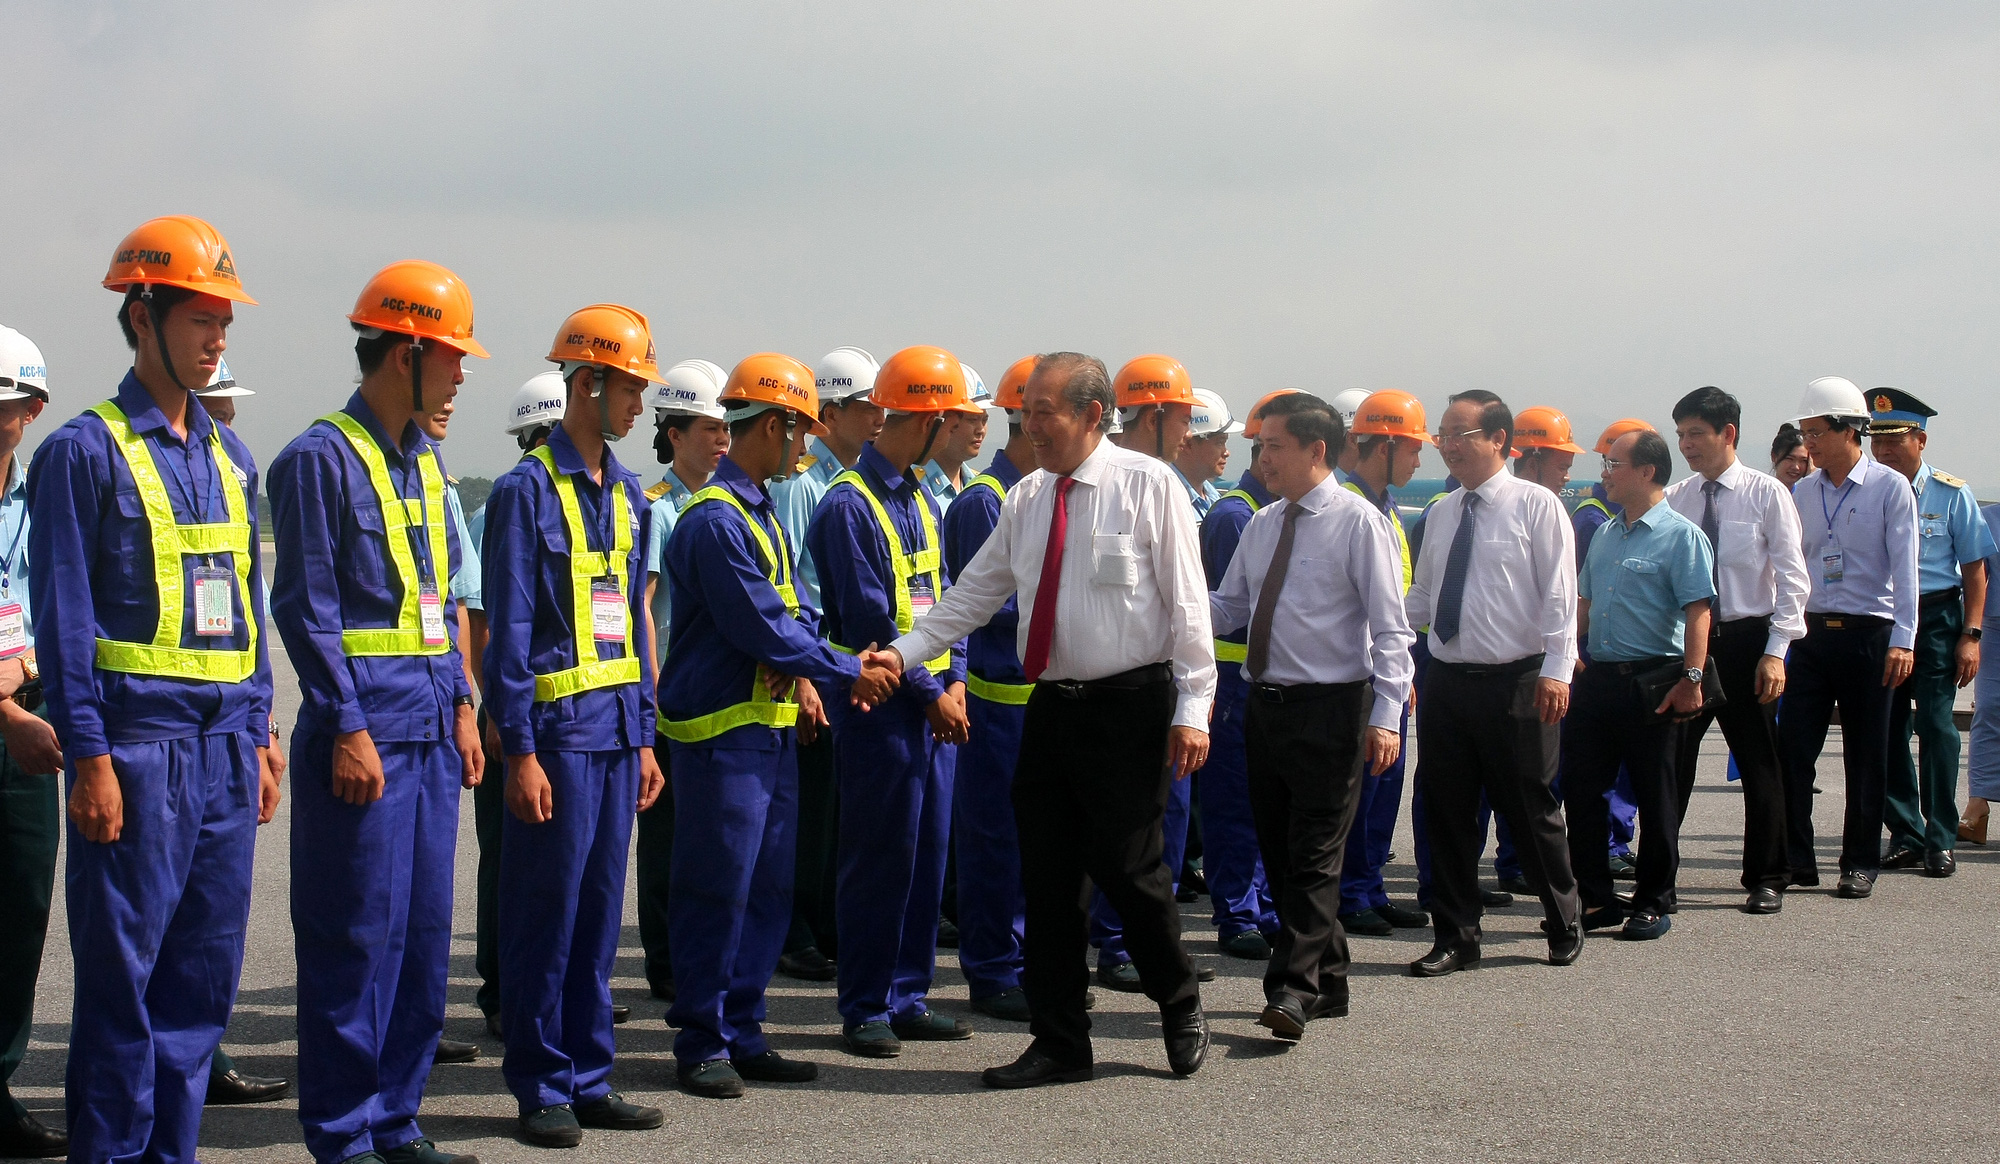 Deputy Prime Minister Truong Hoa Binh shakes hands with a team of workers in charge of carrying out airport runway upgrade projects at Noi Bai International Airport in Hanoi. Photo: Tuan Phung / Tuoi Tre